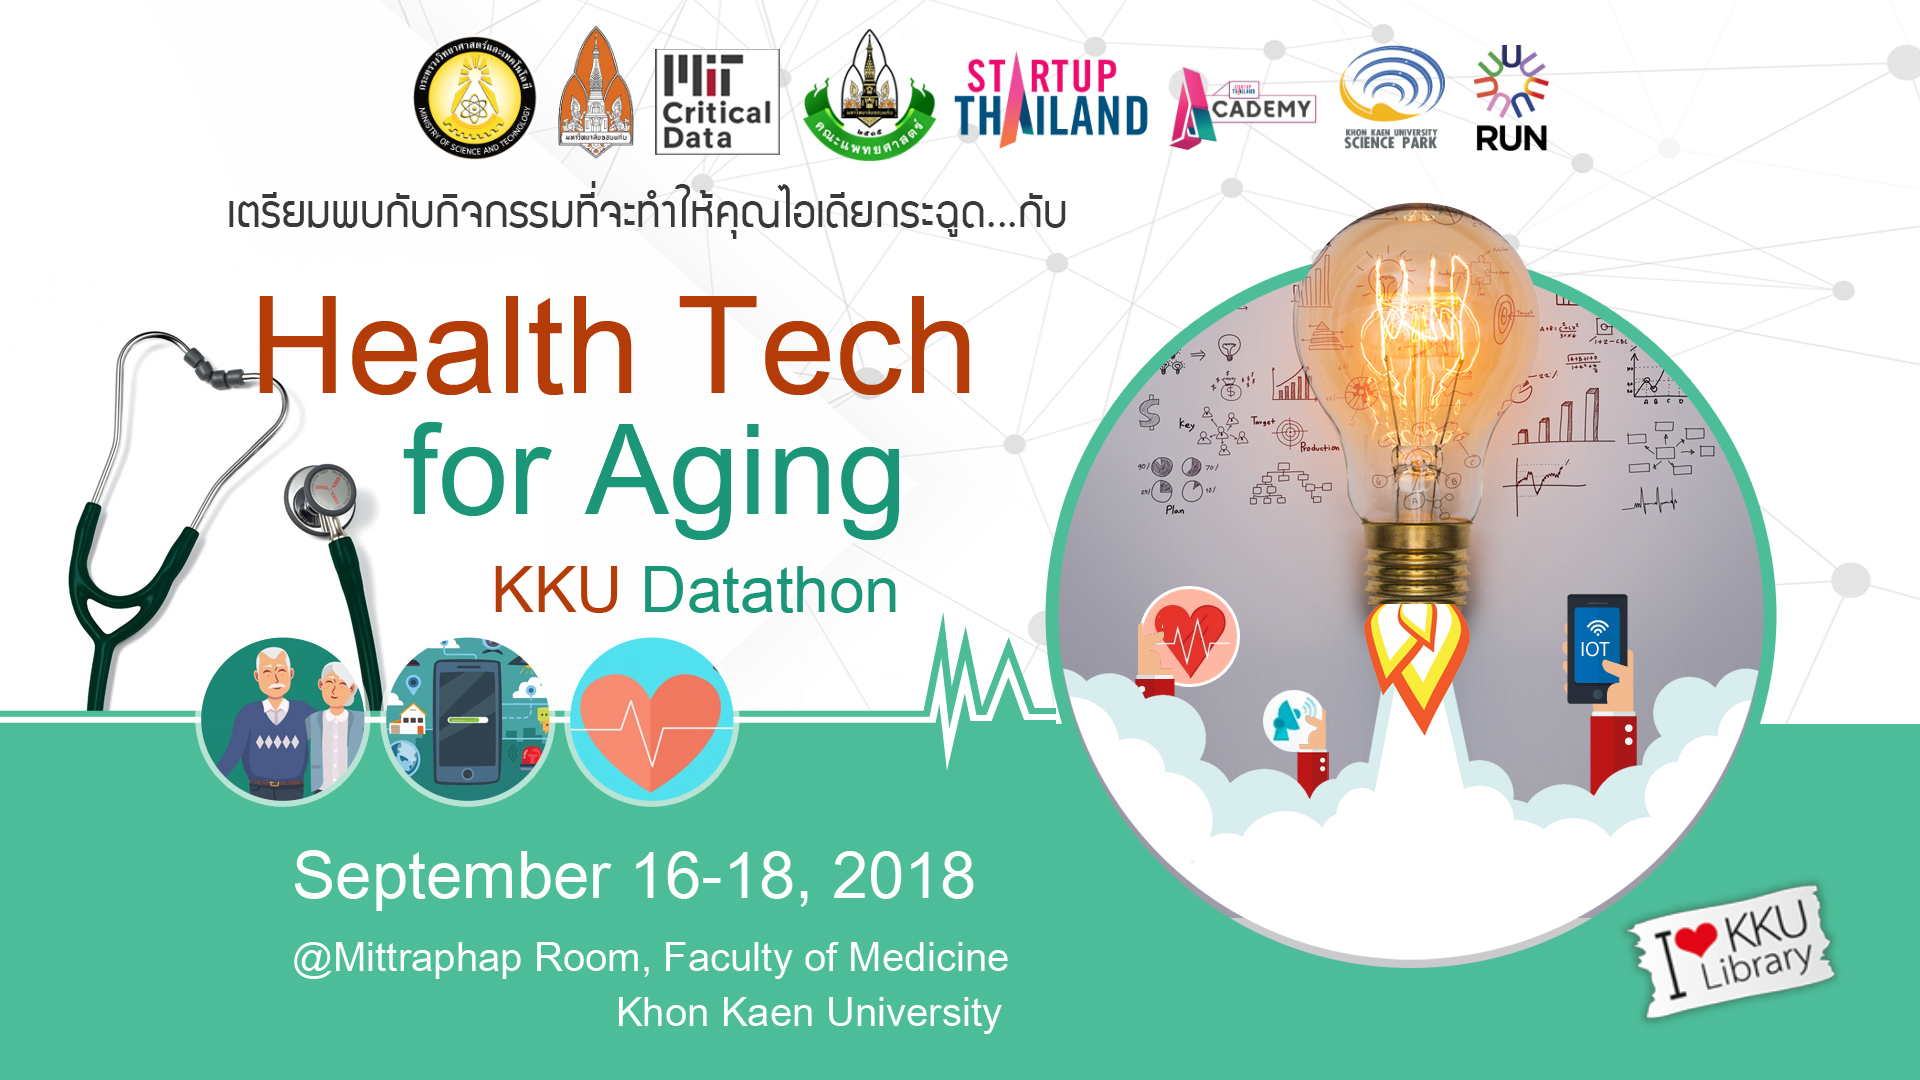 Health Tech for Aging KKU Datathon